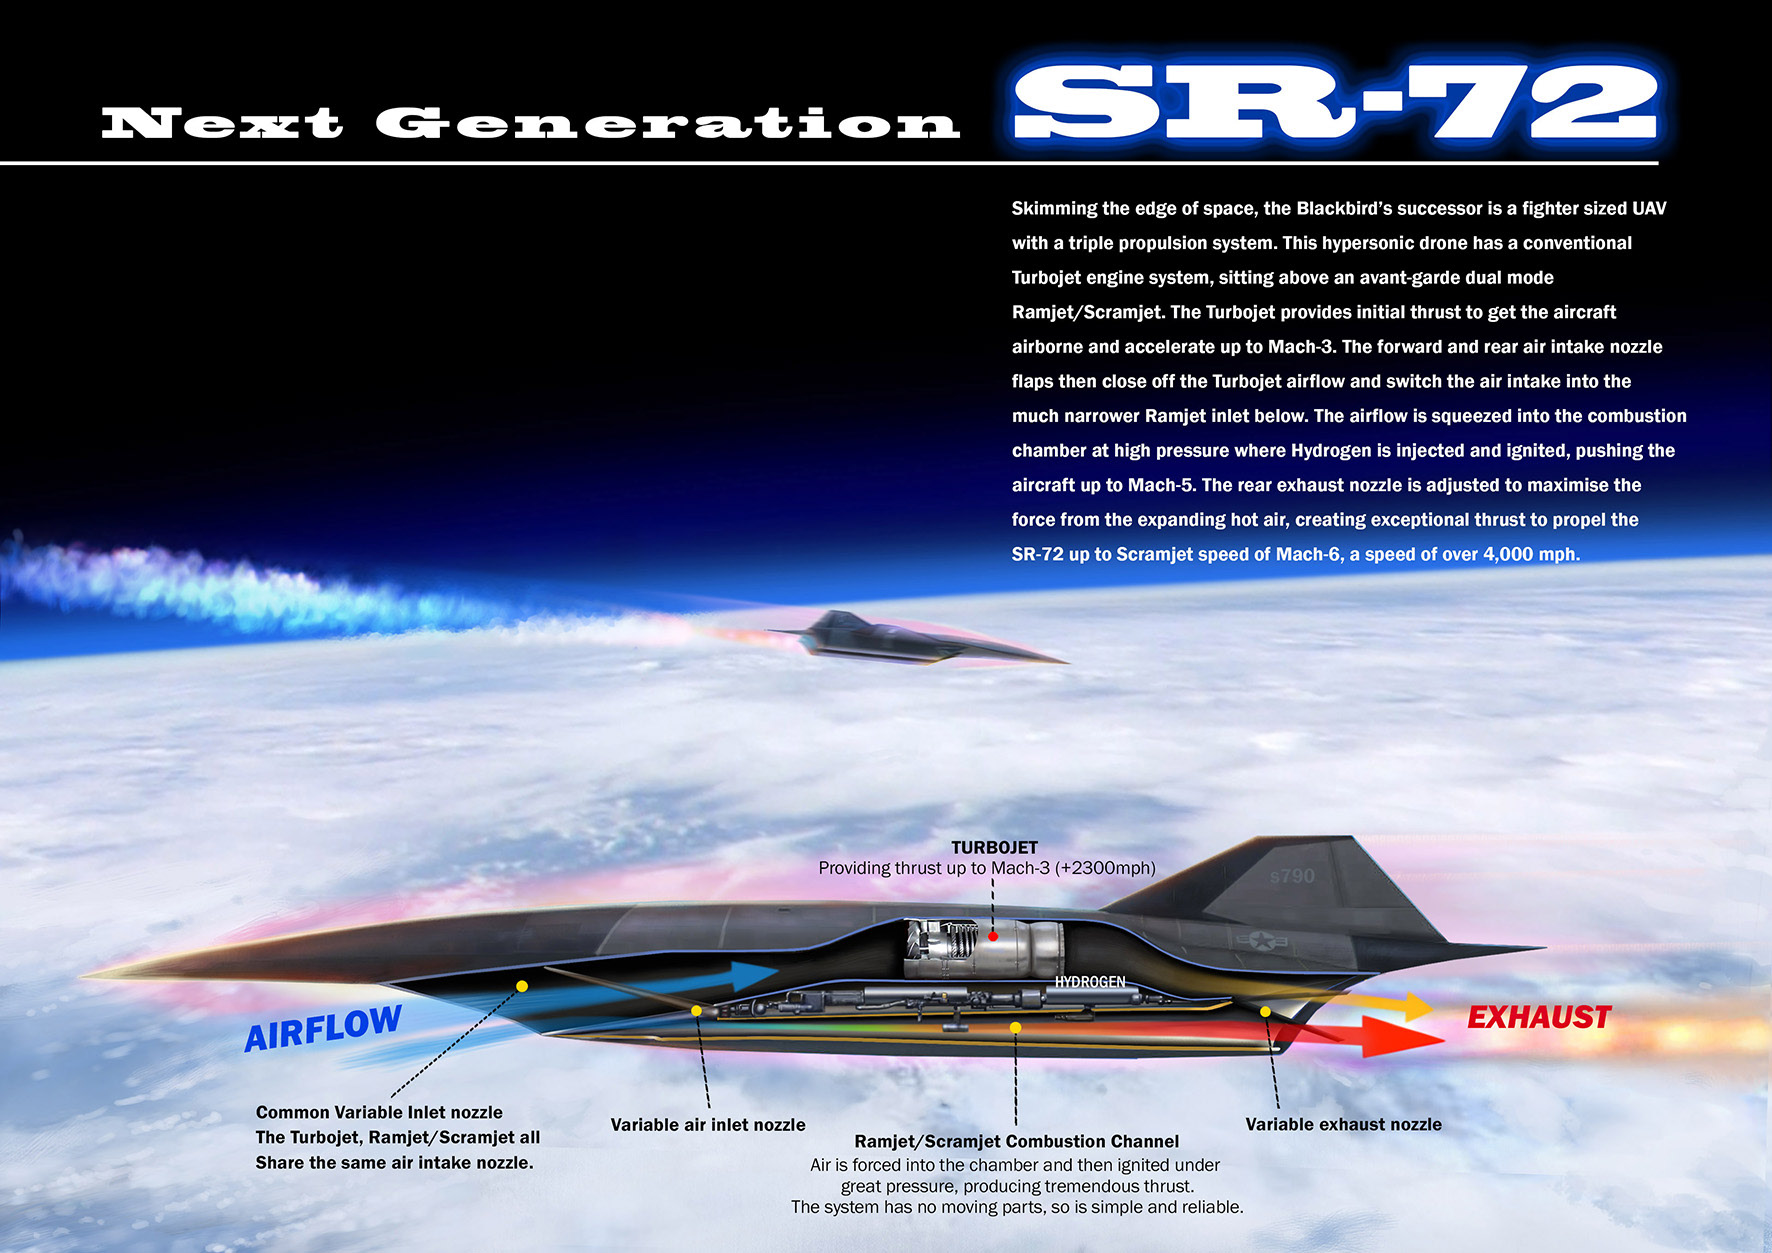 Defence Concepts p gibbs333@gmail com on Behance